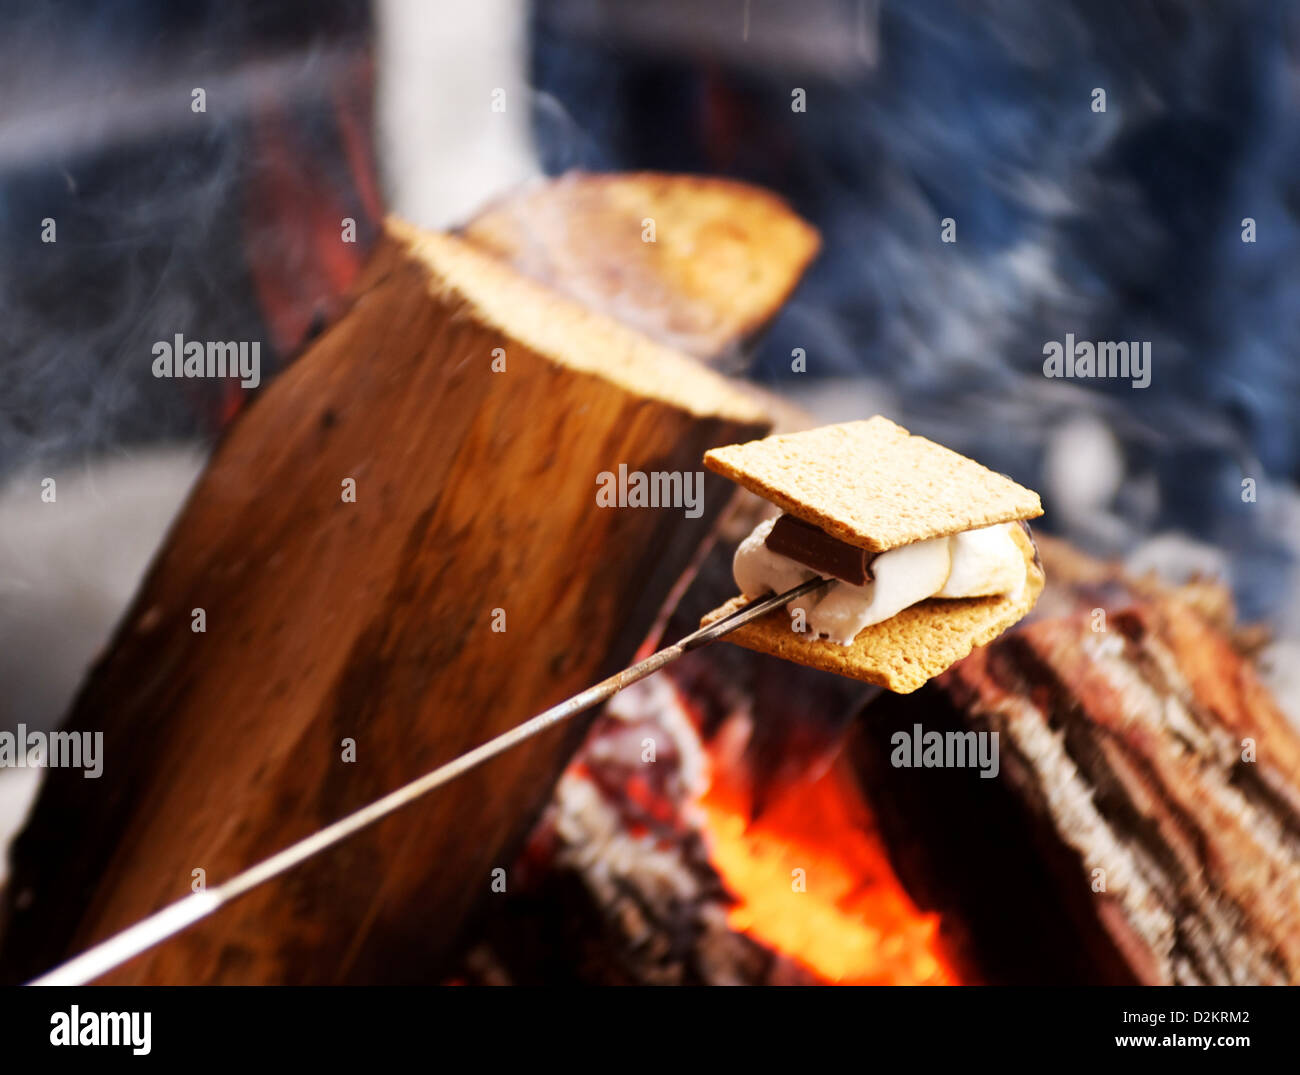 Graham Cracker Chocolate And Marshmallow Roasted Over A Campfire